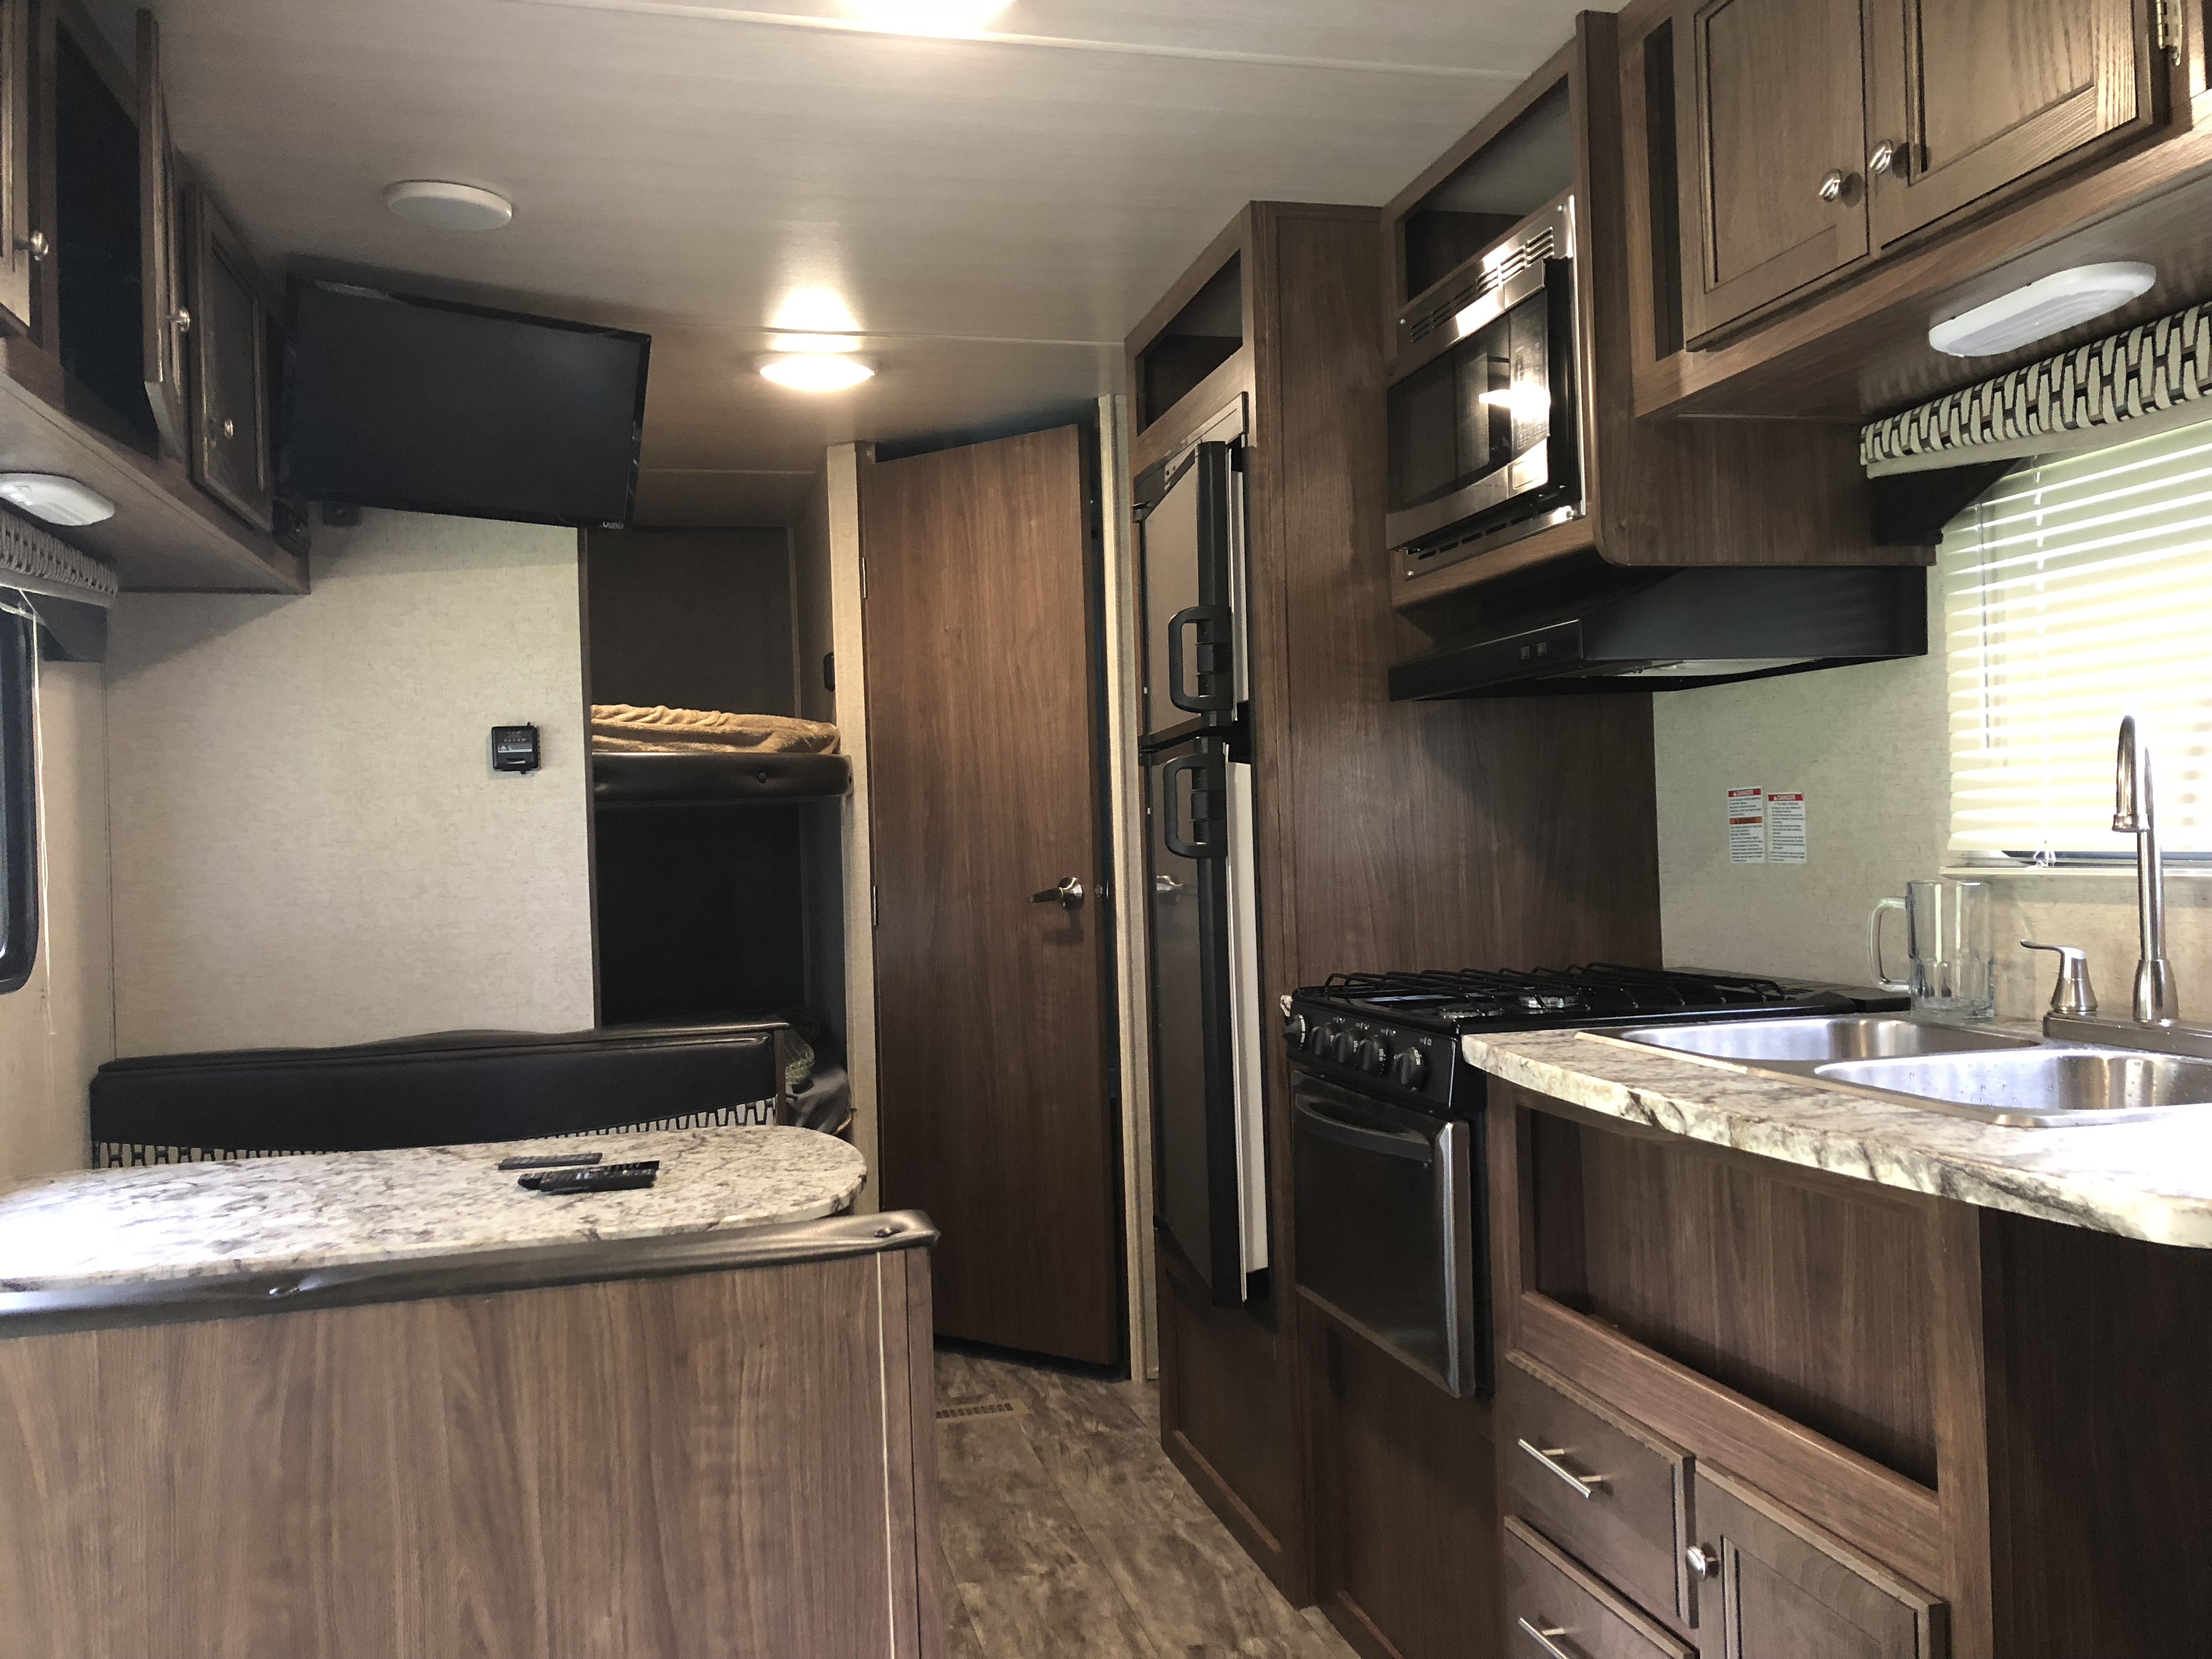 Great interior with stainless dual sinks, pantry, separate freezer and fridge, microwave, oven, 3 burner stove top and 24 inch TV Blue-ray player for entertainment. Unit also is stocked with toaster, Keurig, bluetooth radio/cd player pots pans dishes and silverware. . Heartland Trail Runner 2017